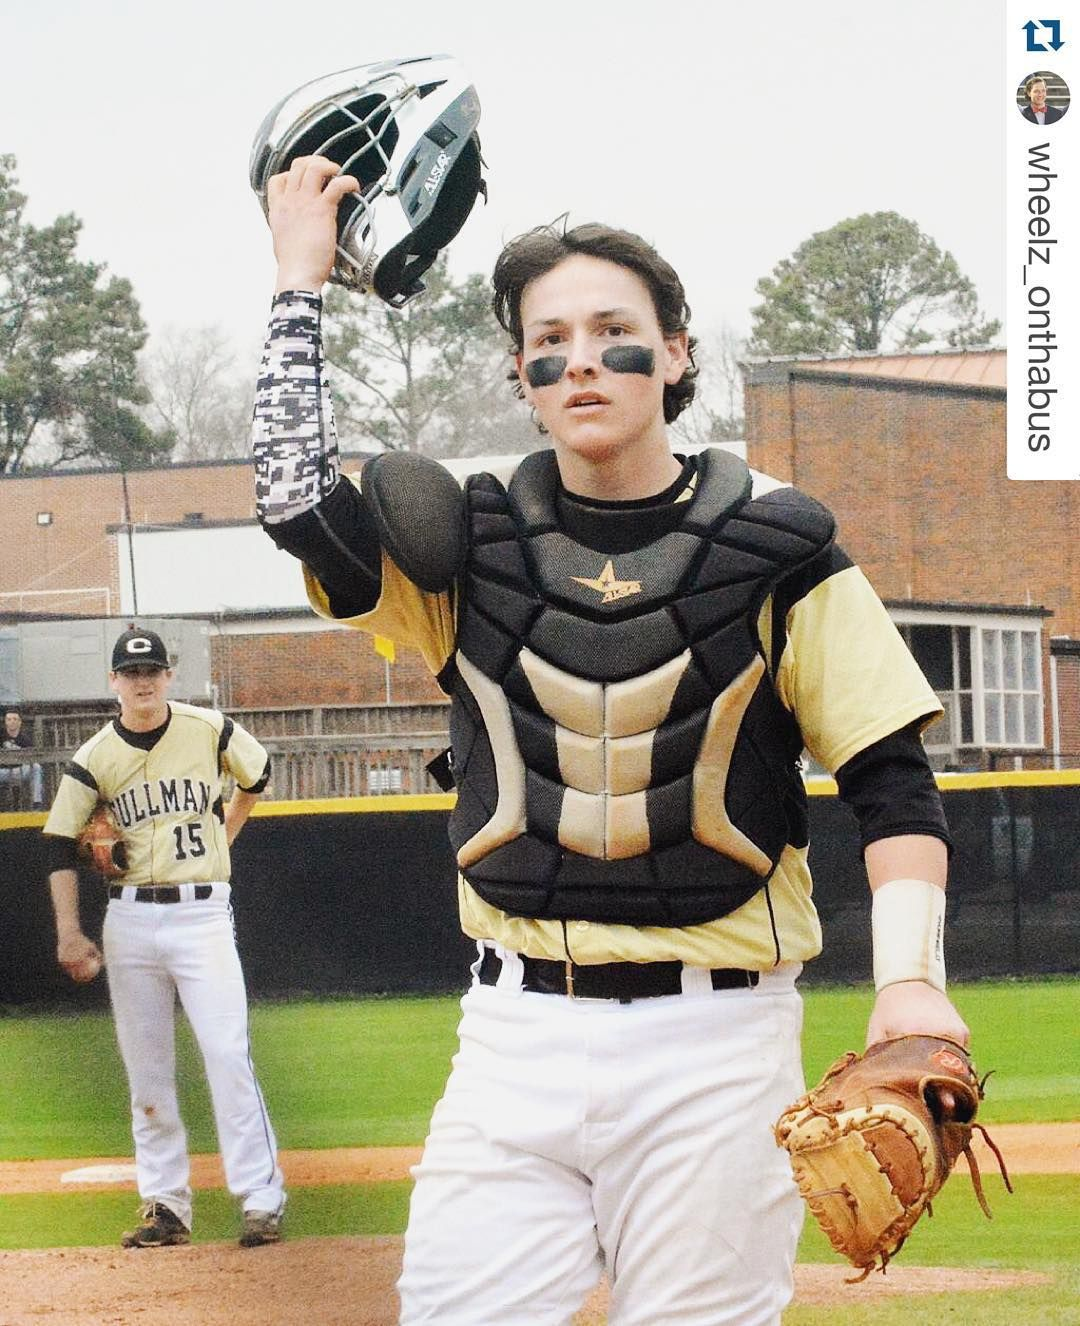 @wheelz_onthabus #CullmanBearcats #CullmanHighSchool #CullmanBearcatBaseball  HBD to my favorite Cajun!!!! Gonna miss catching you & you staring at my butt:// #LionUp       Posted on November 14 2015 at 03:26PM at http://ift.tt/1O90YCs by CullmanSense